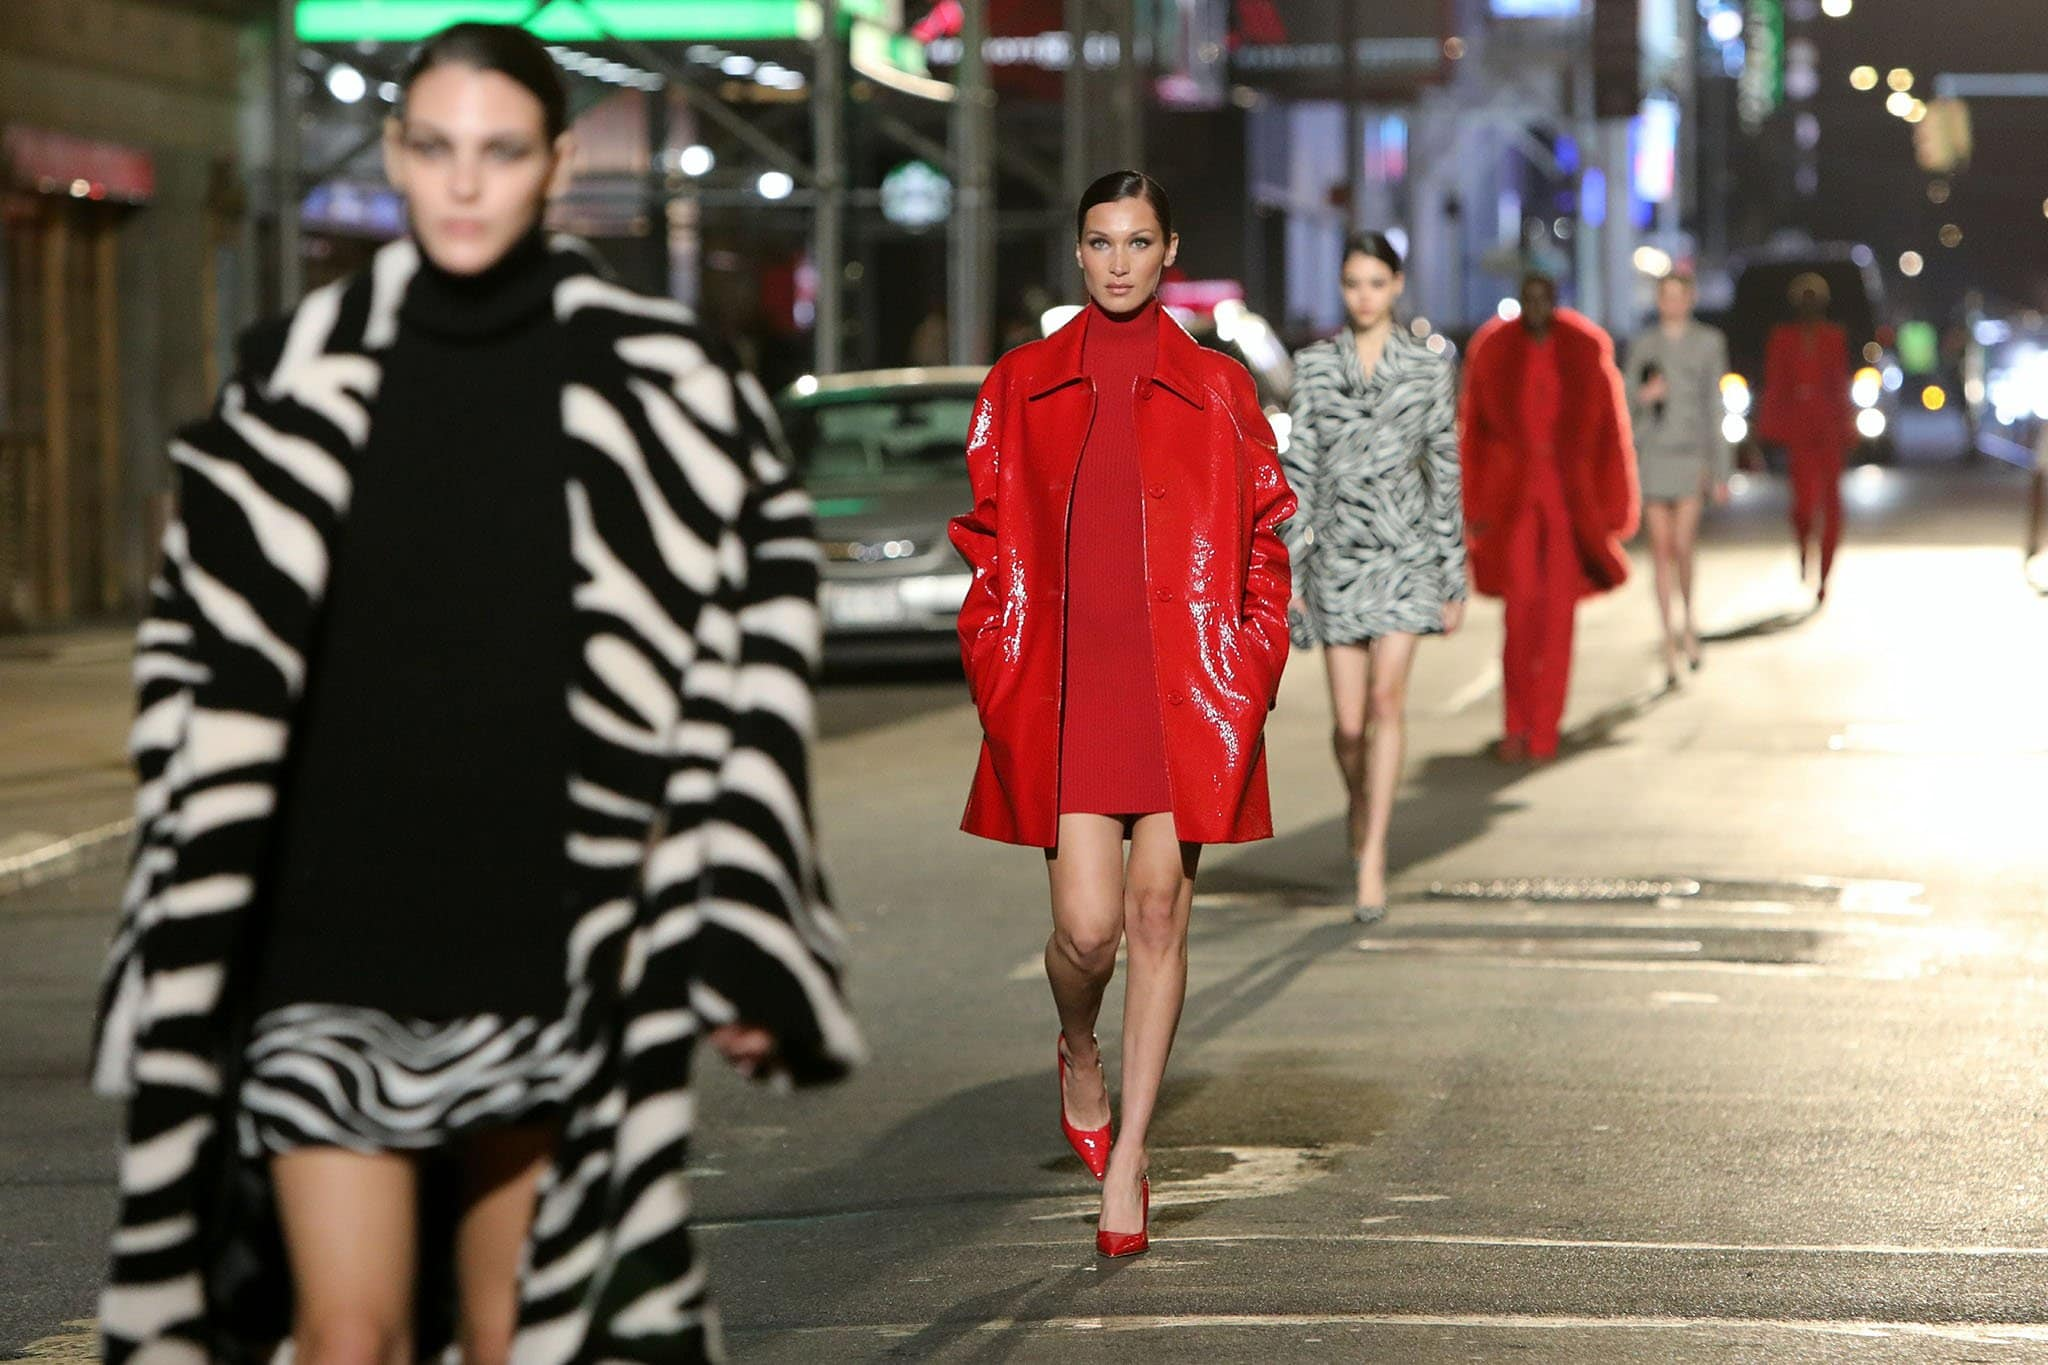 Supermodels hit the New York City street in Michael Kors' latest outfit designs